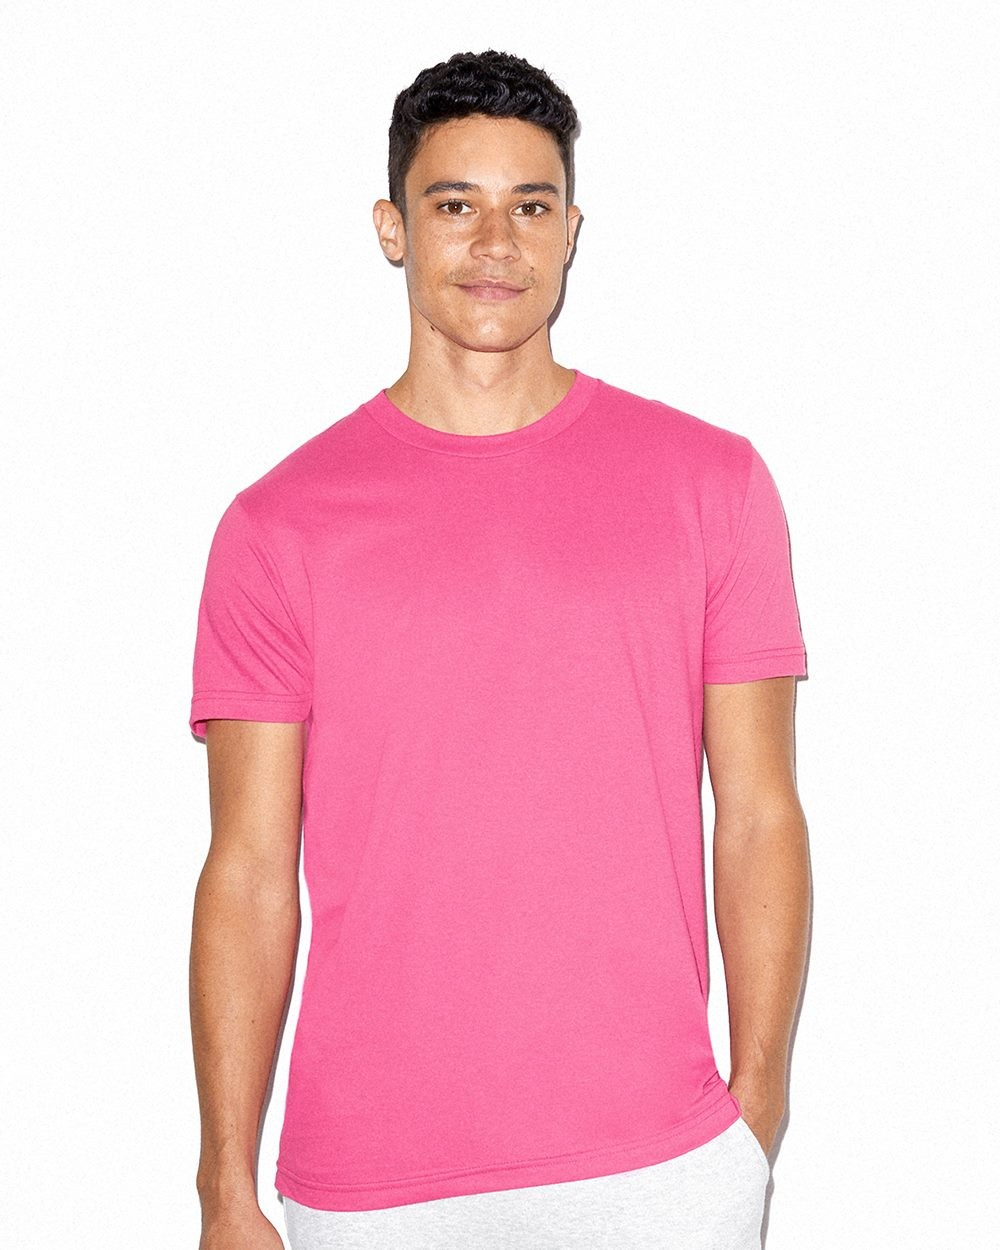 2 Pallets of Adult American Apparel Fine Jersey T-Shirts, 2 Ext. Retail $38,520, Mira Loma, CA